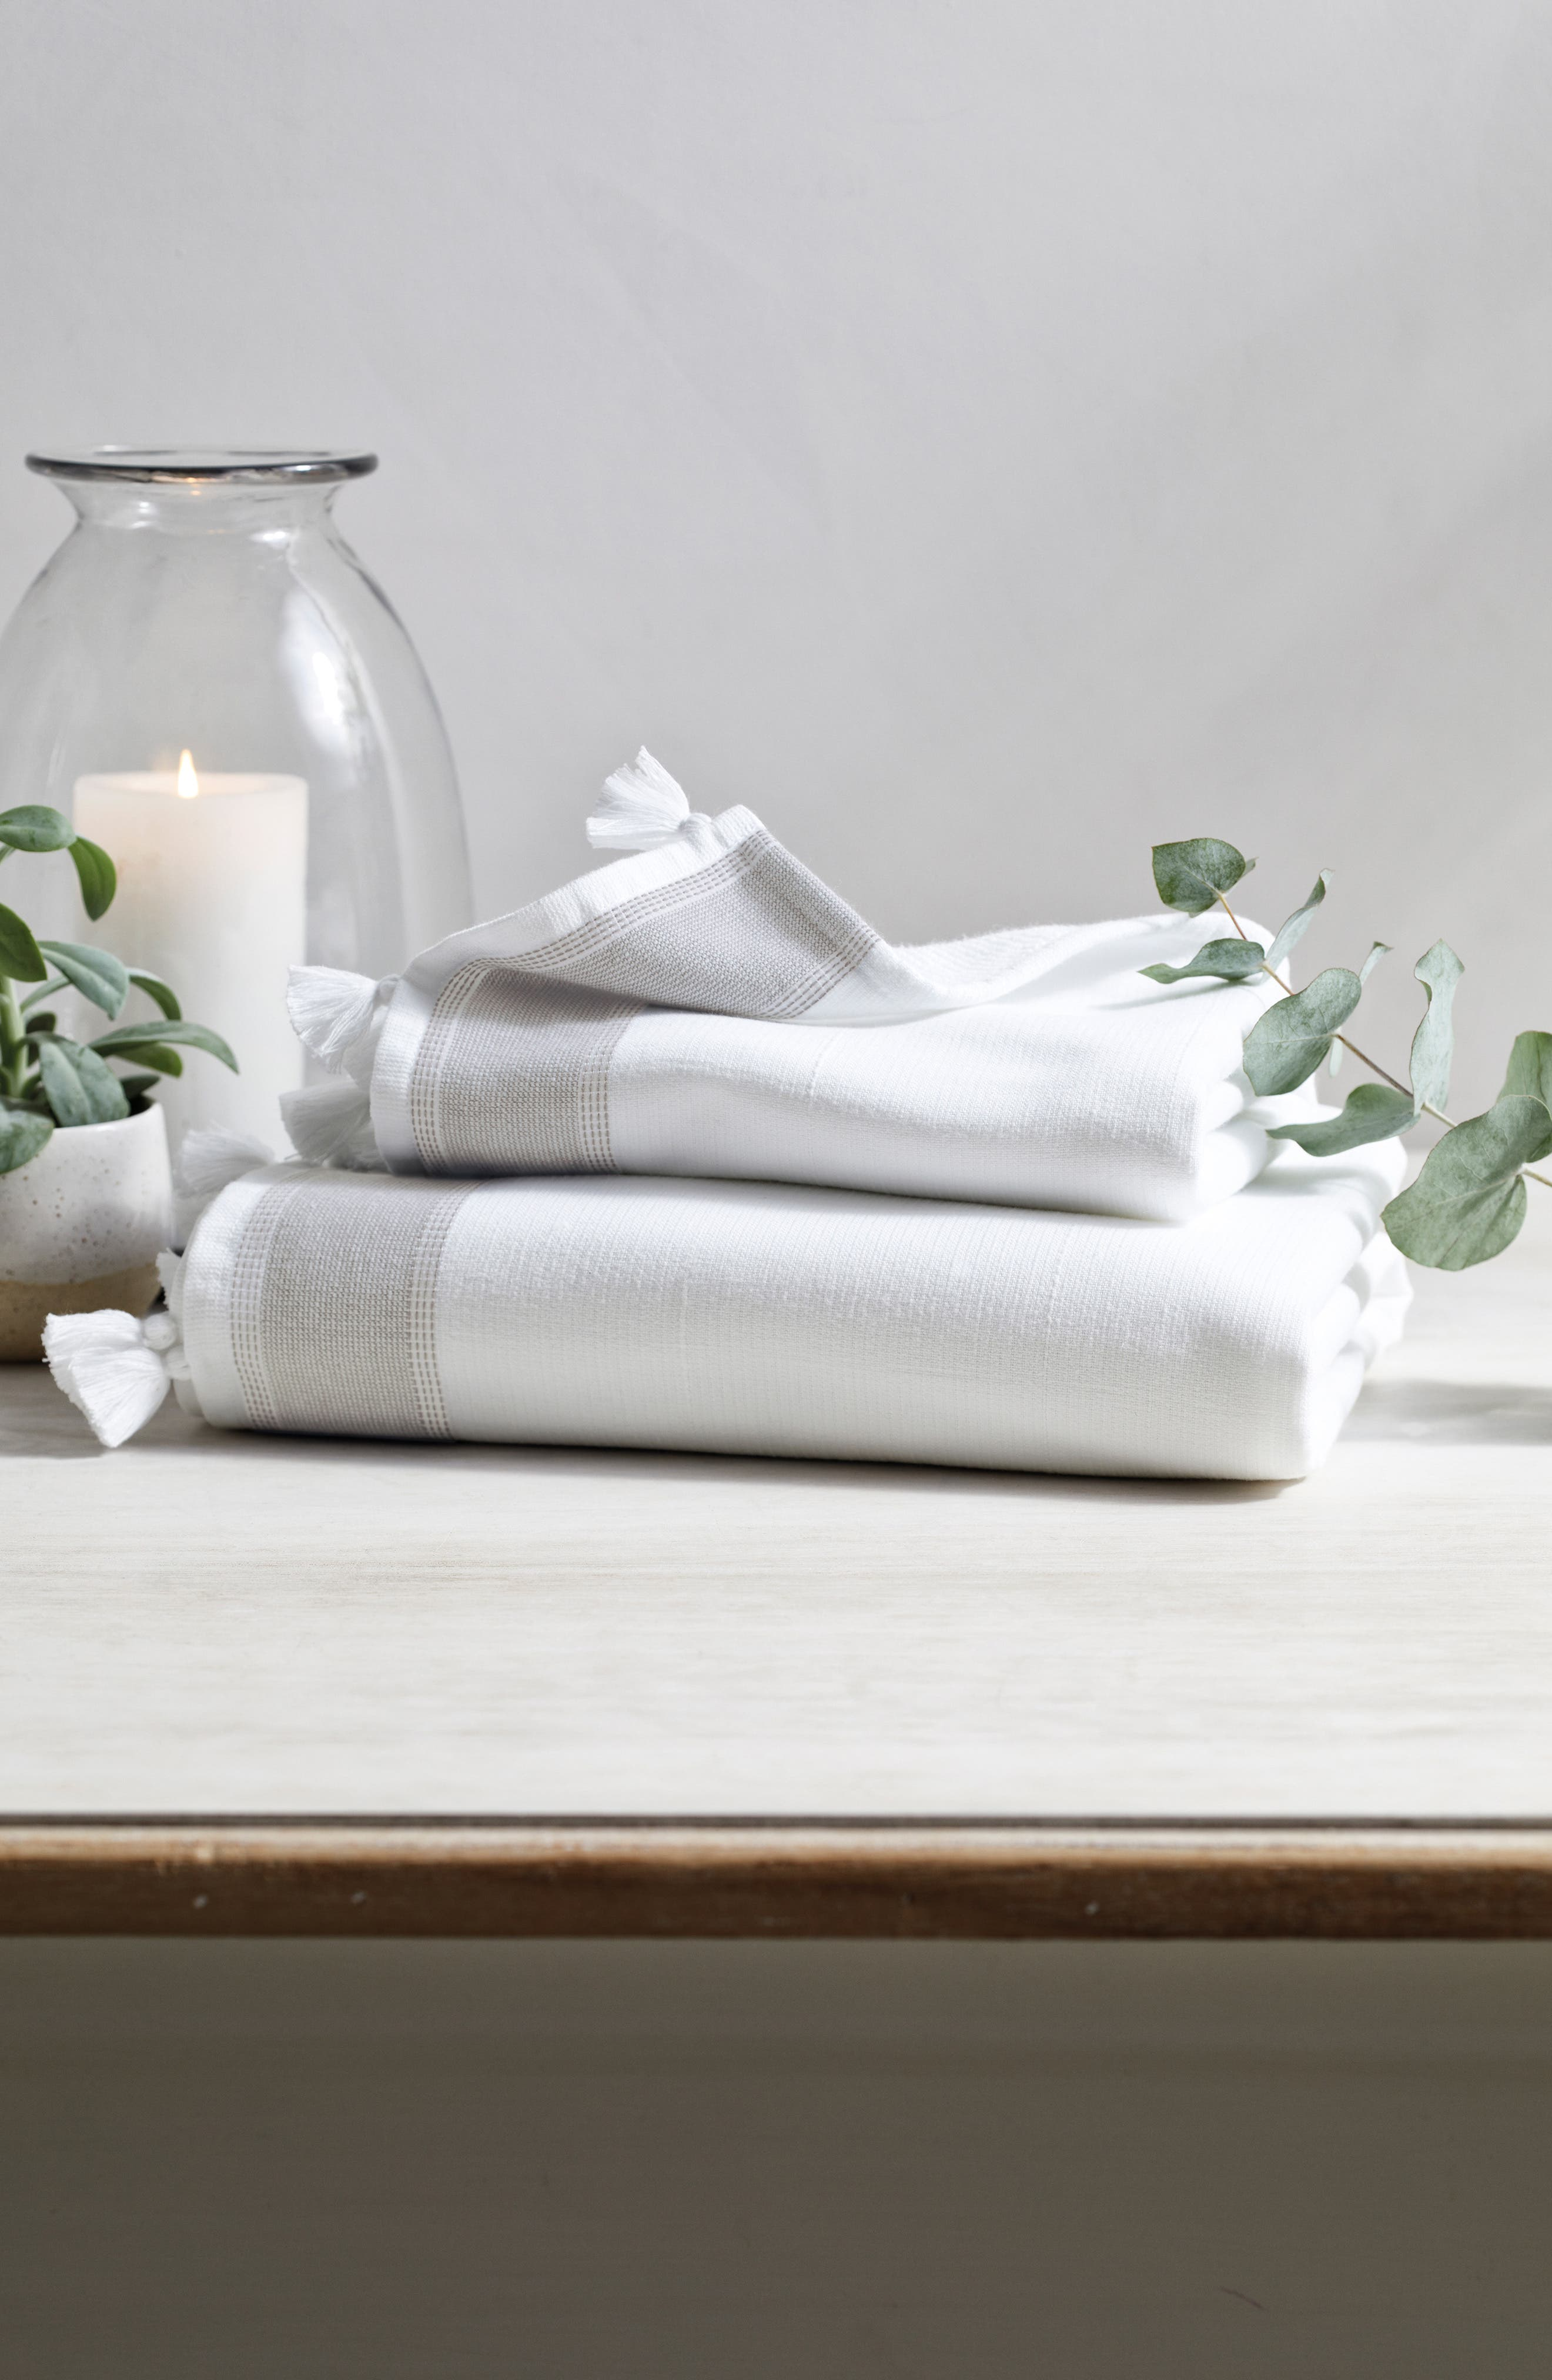 THE WHITE COMPANY St. Ives Hammam Bath Towel, Main, color, WHITE/ GREY